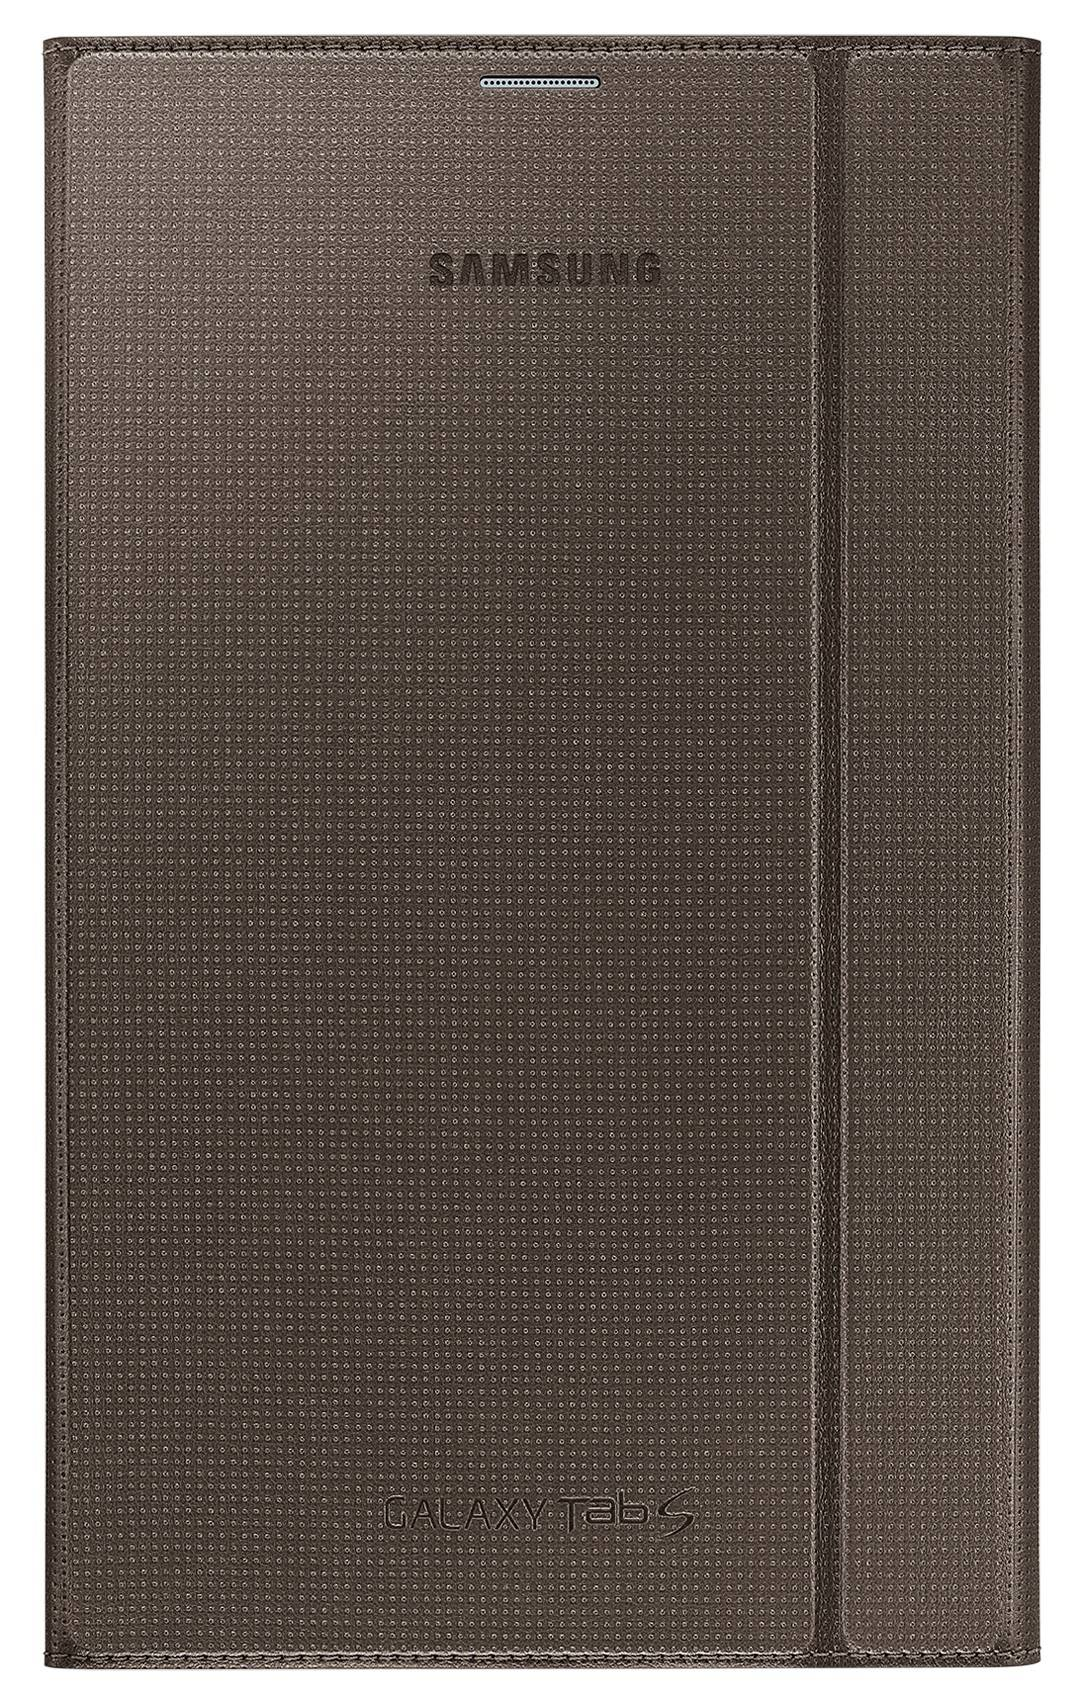 "Samsung Galaxy Tab S 8.4"" Book Cover kotelo (pronssi)"